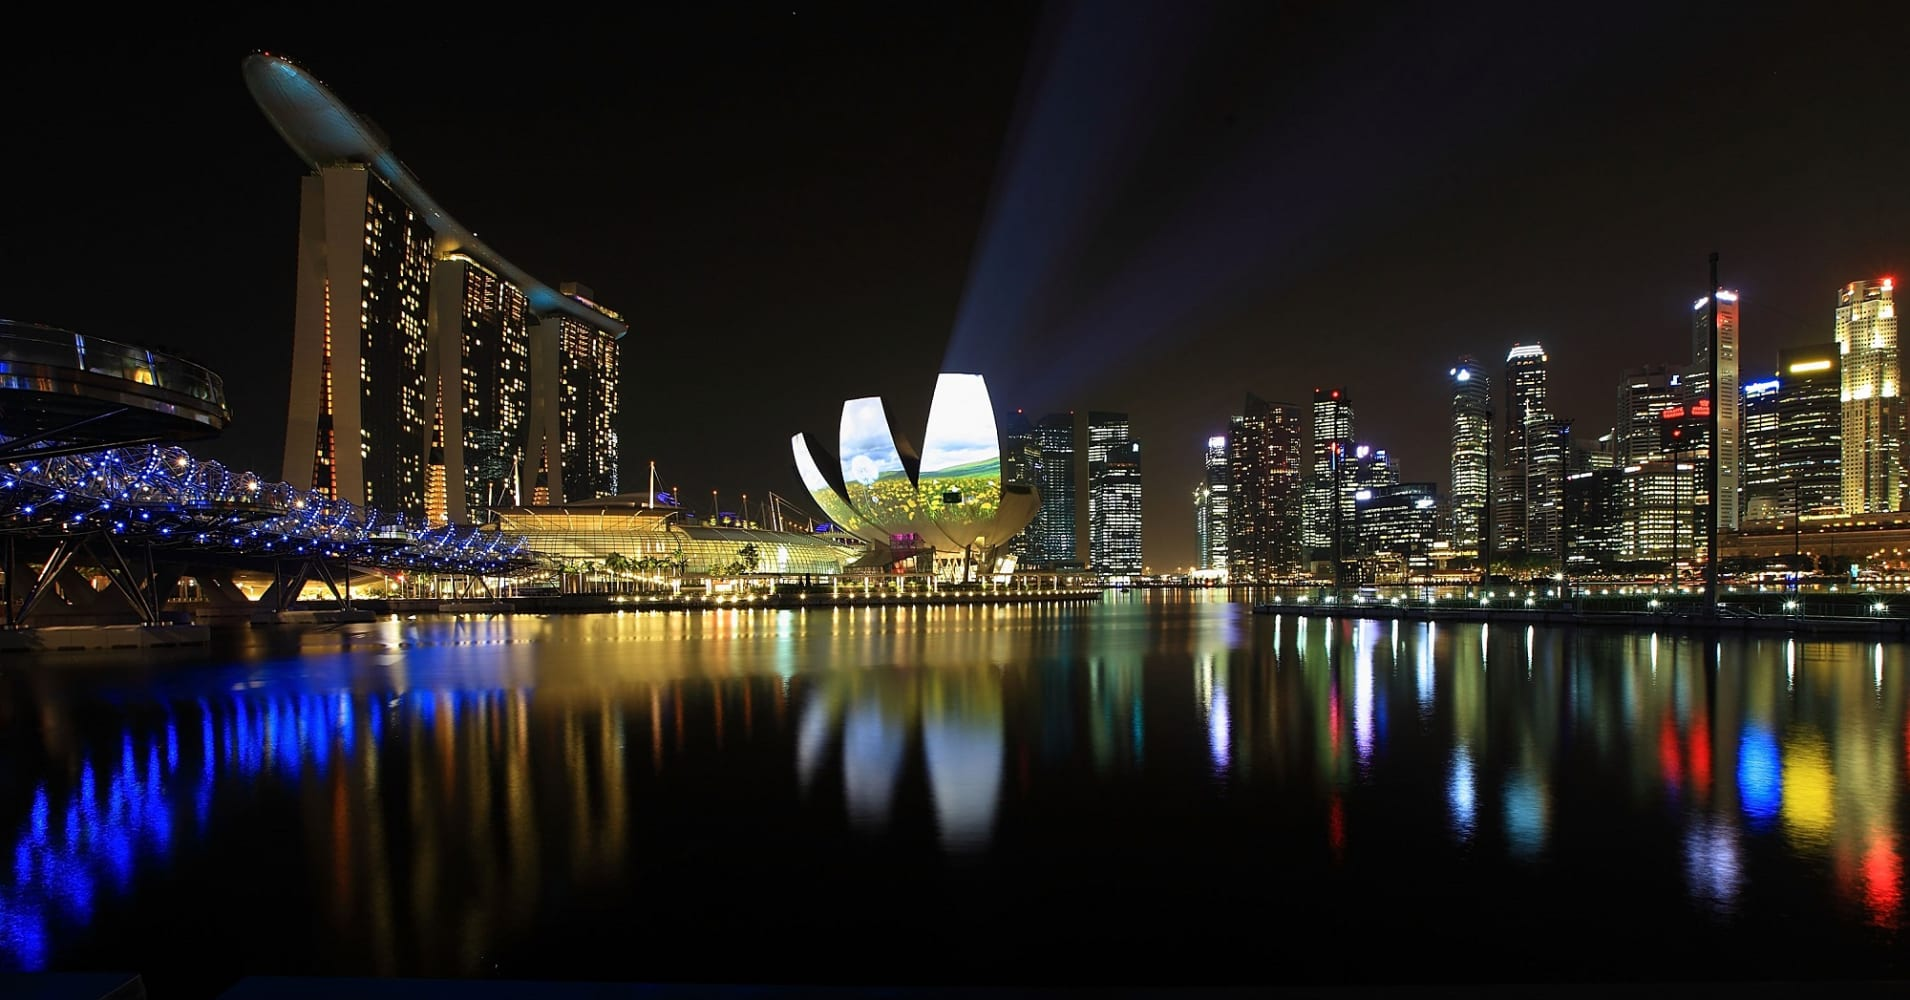 Hong Kong and Singapore compete for the tourist dollar, and there's a stand-out winner